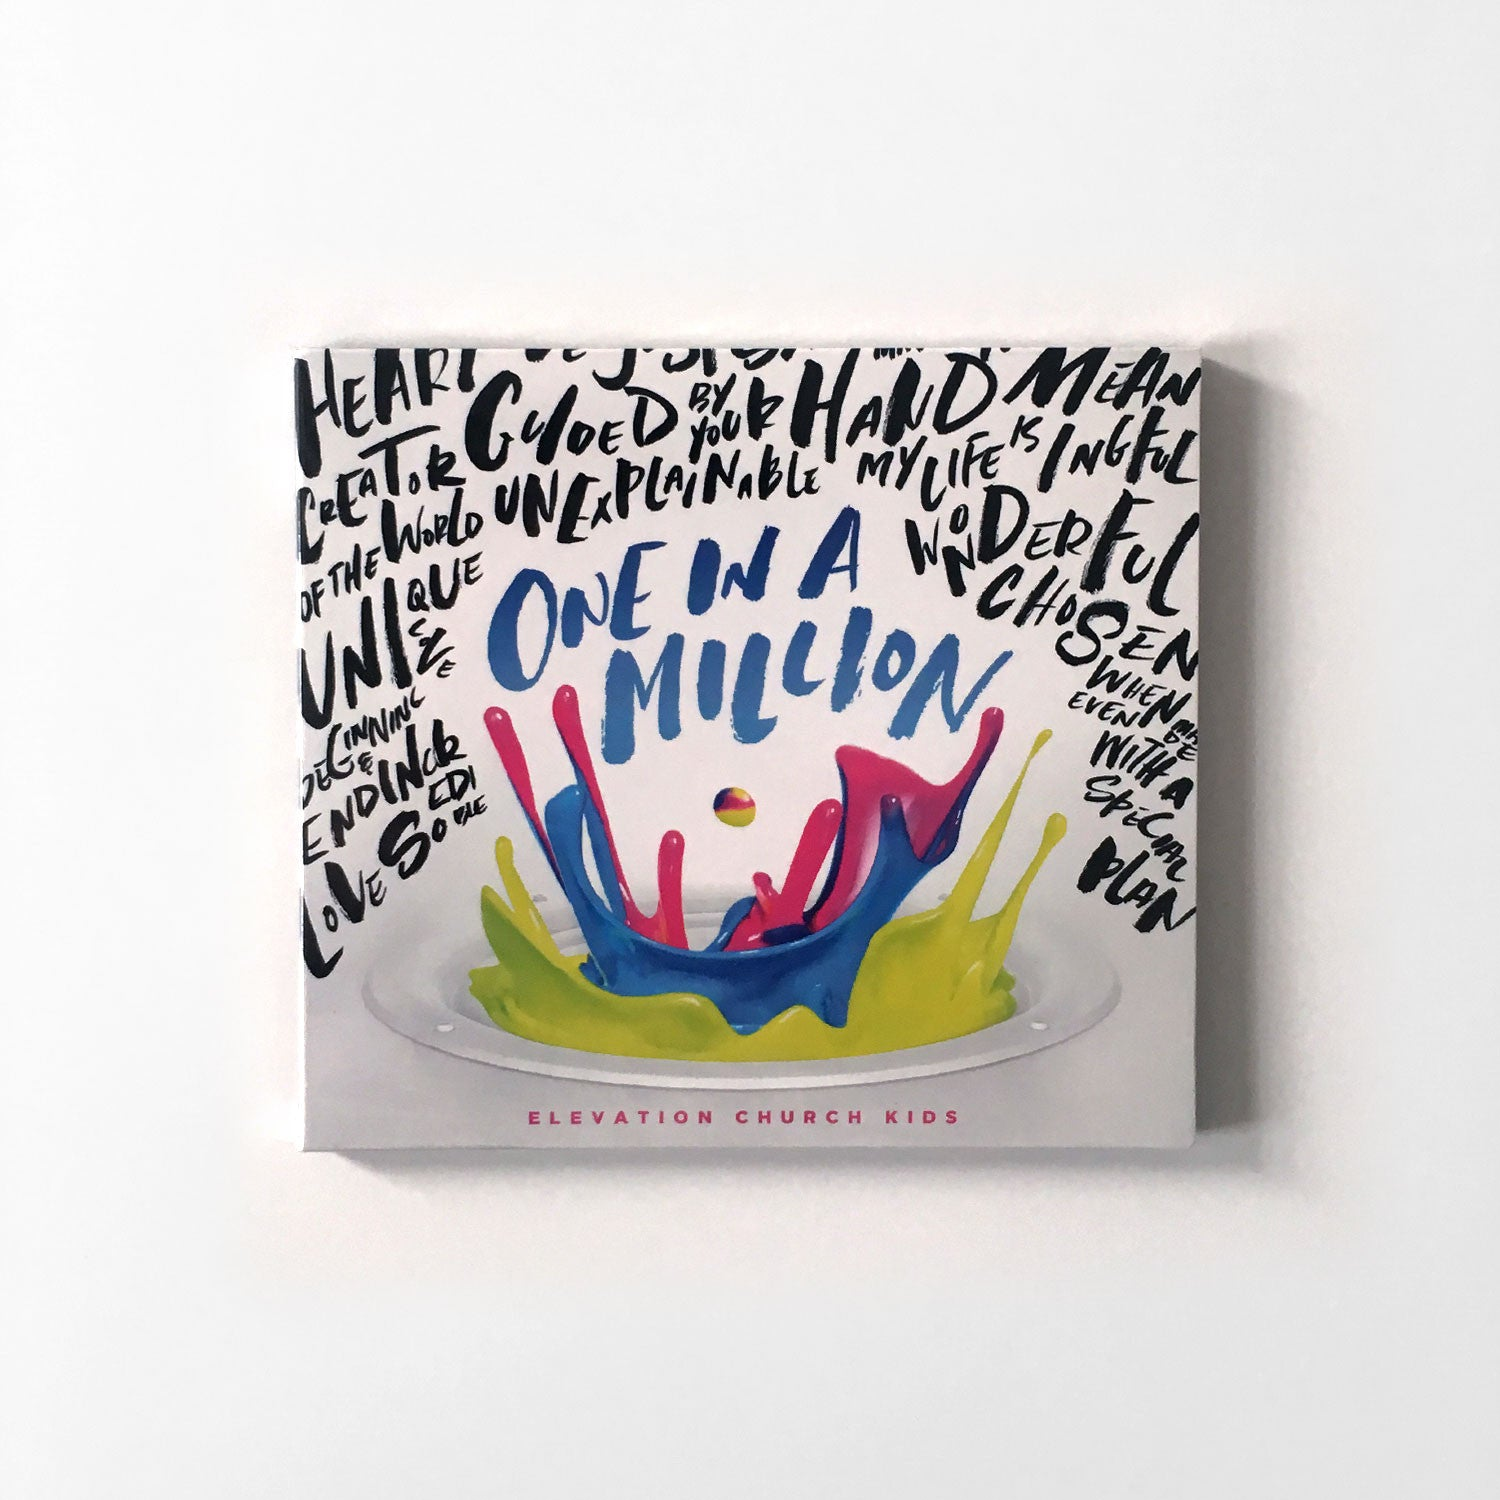 Elevation Church Kids - One In A Million (CD)